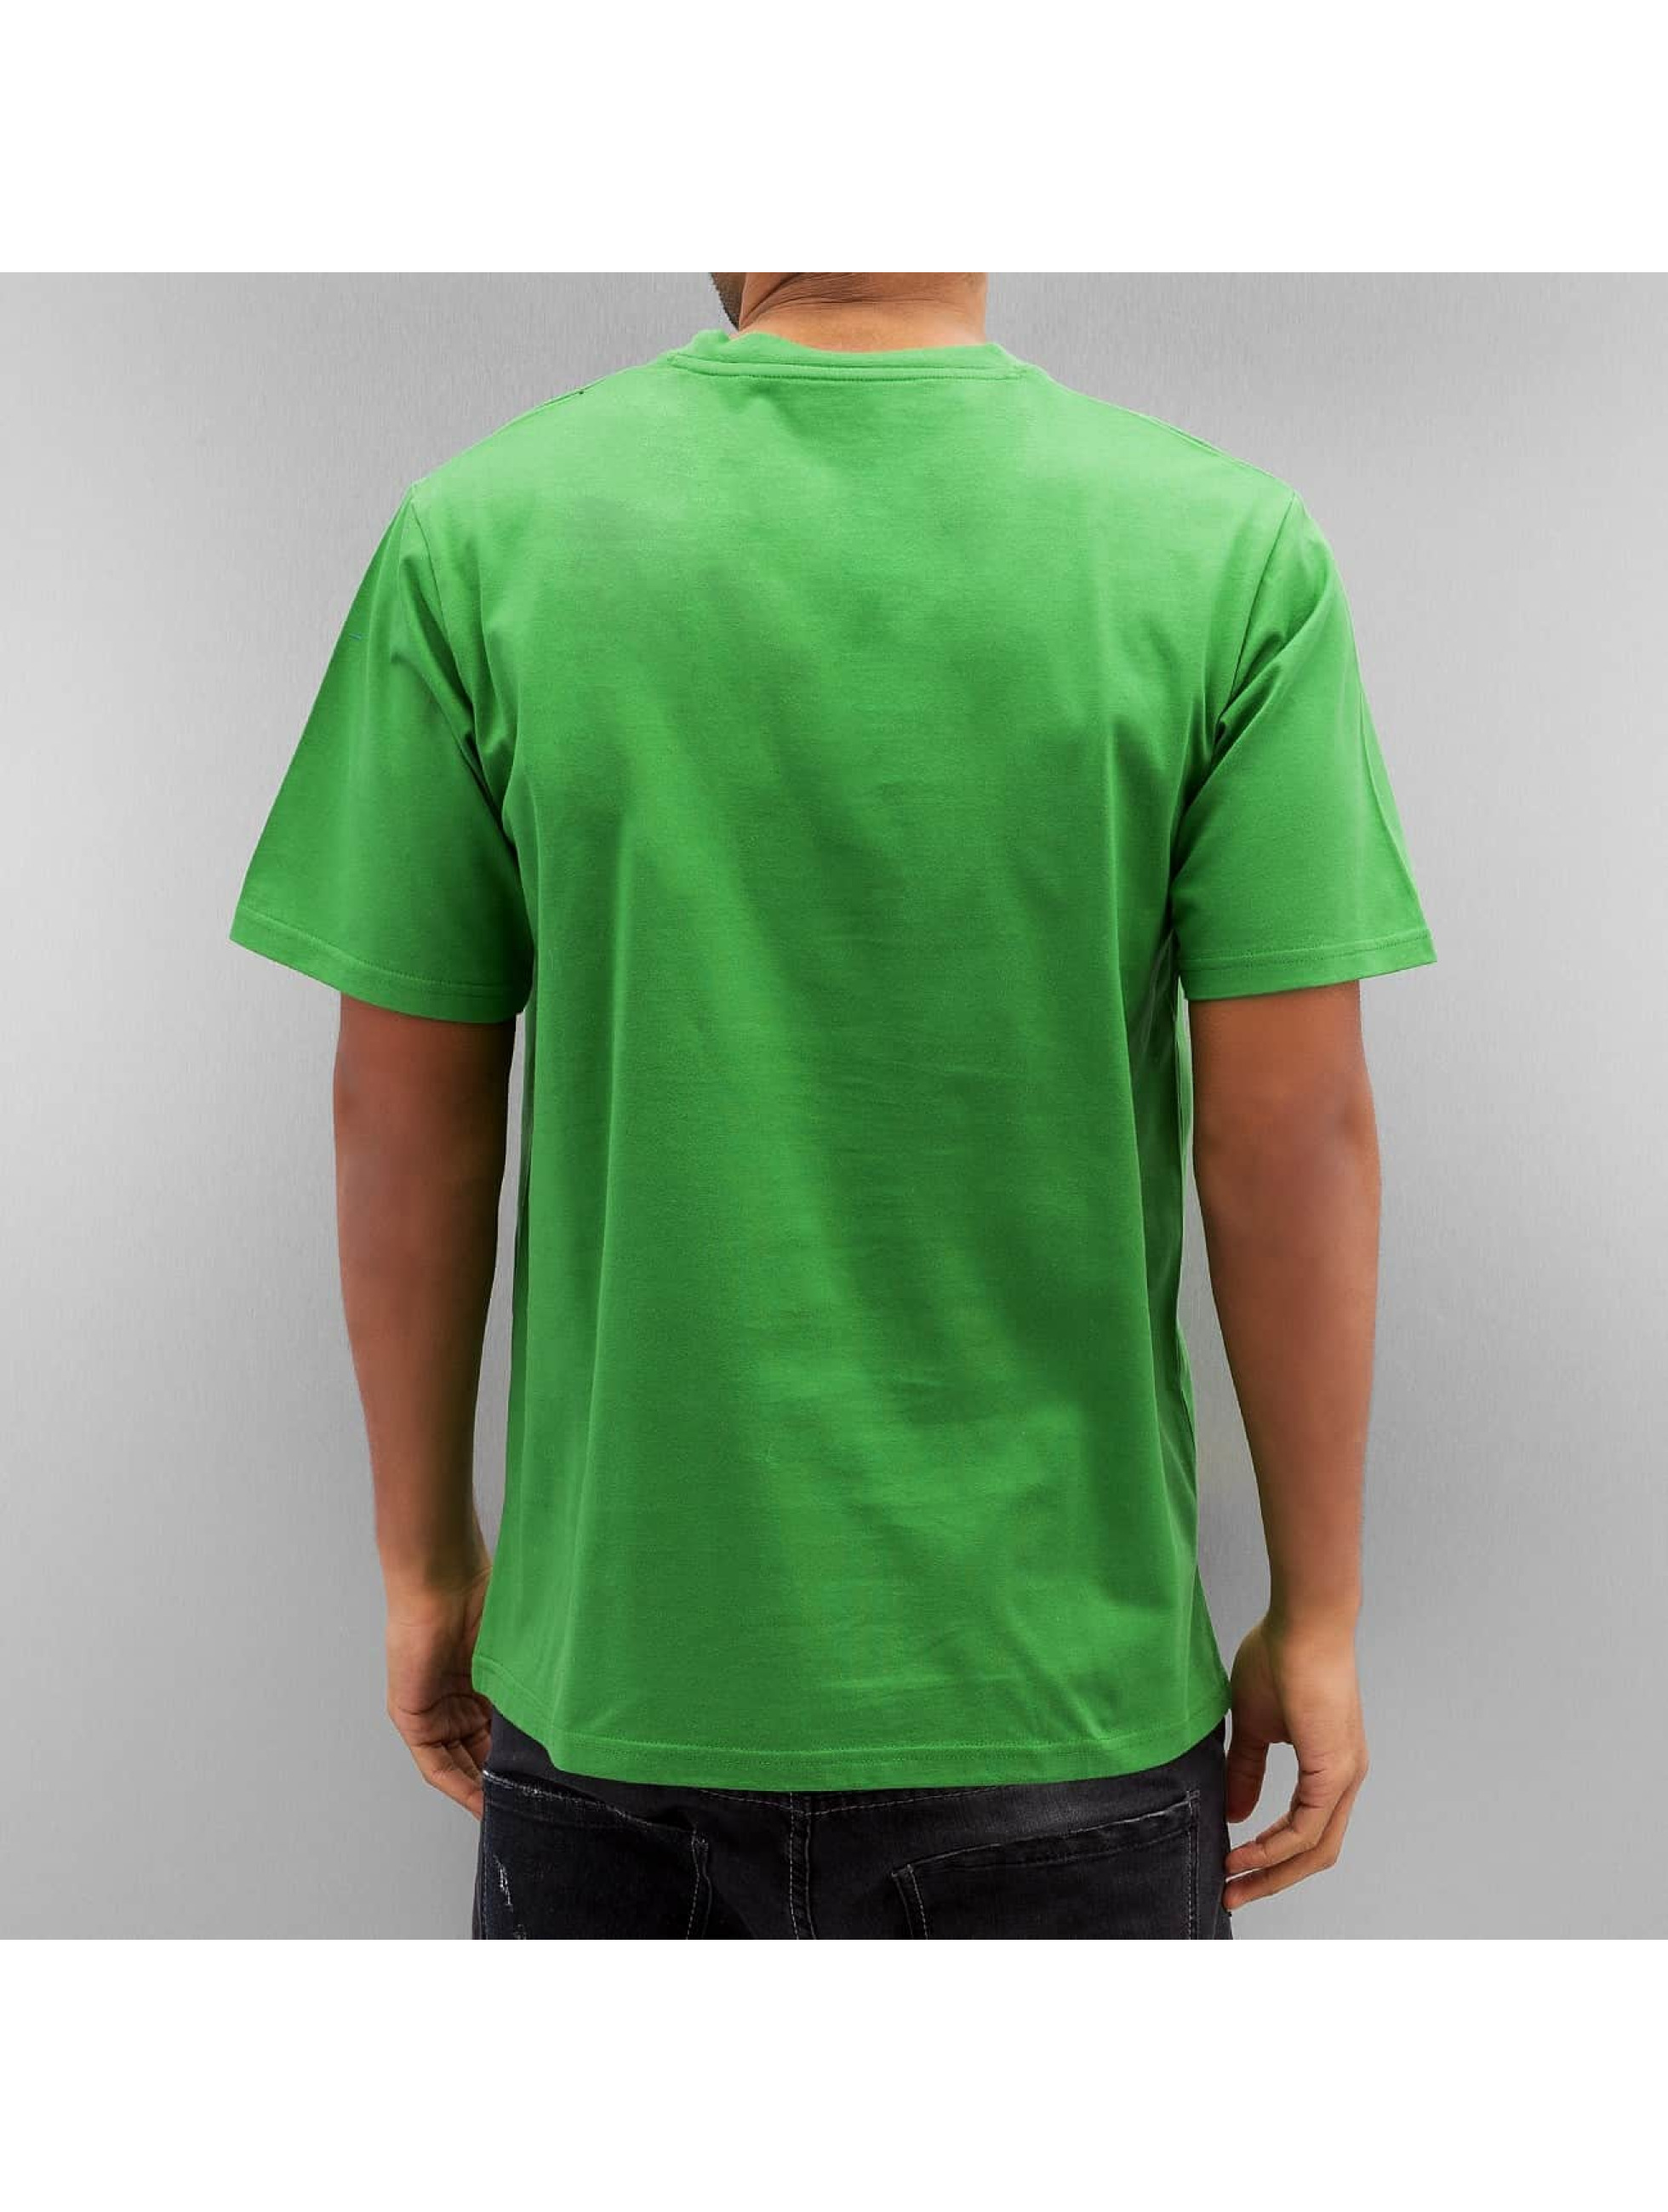 Dickies T-Shirt HS One Colour green